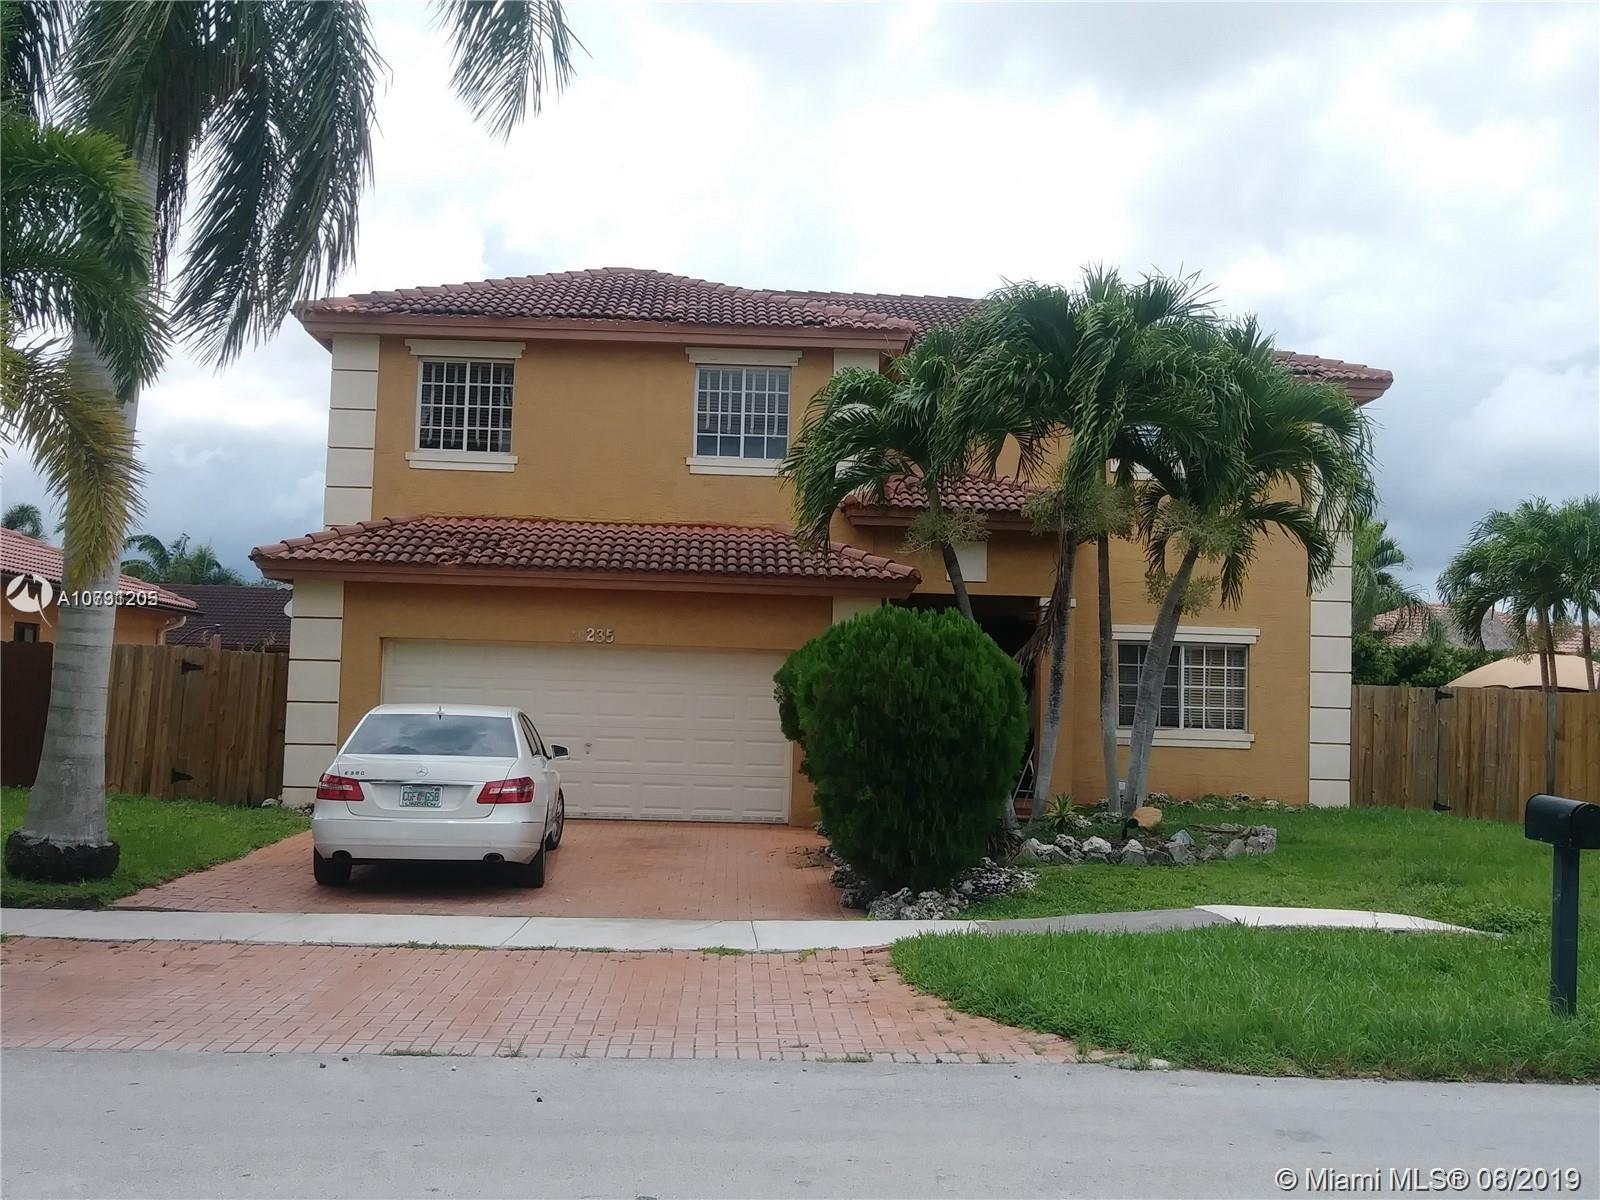 14235 SW 294th St, Homestead, FL 33033 - Homestead, FL real estate listing